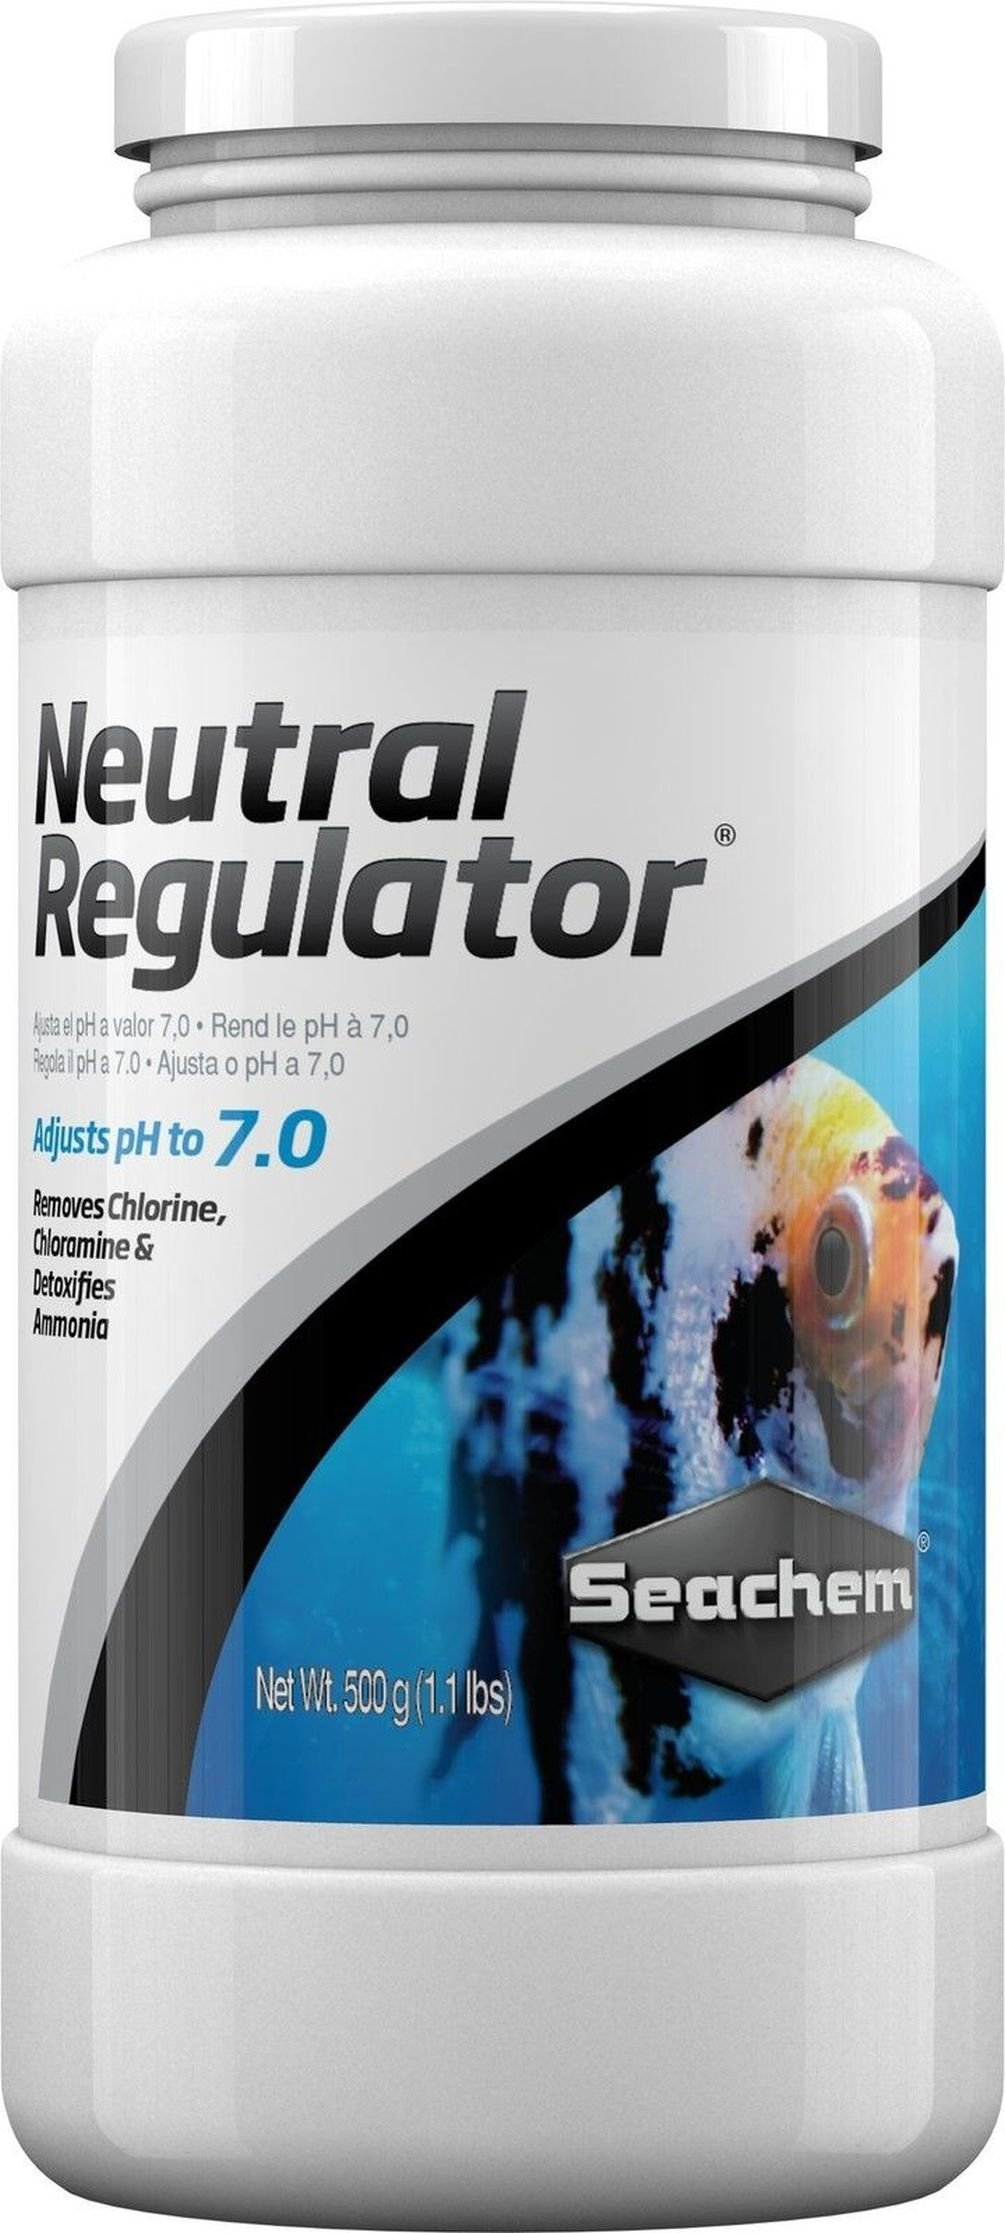 Neutral Regulator 500 g / 1.1 lbs